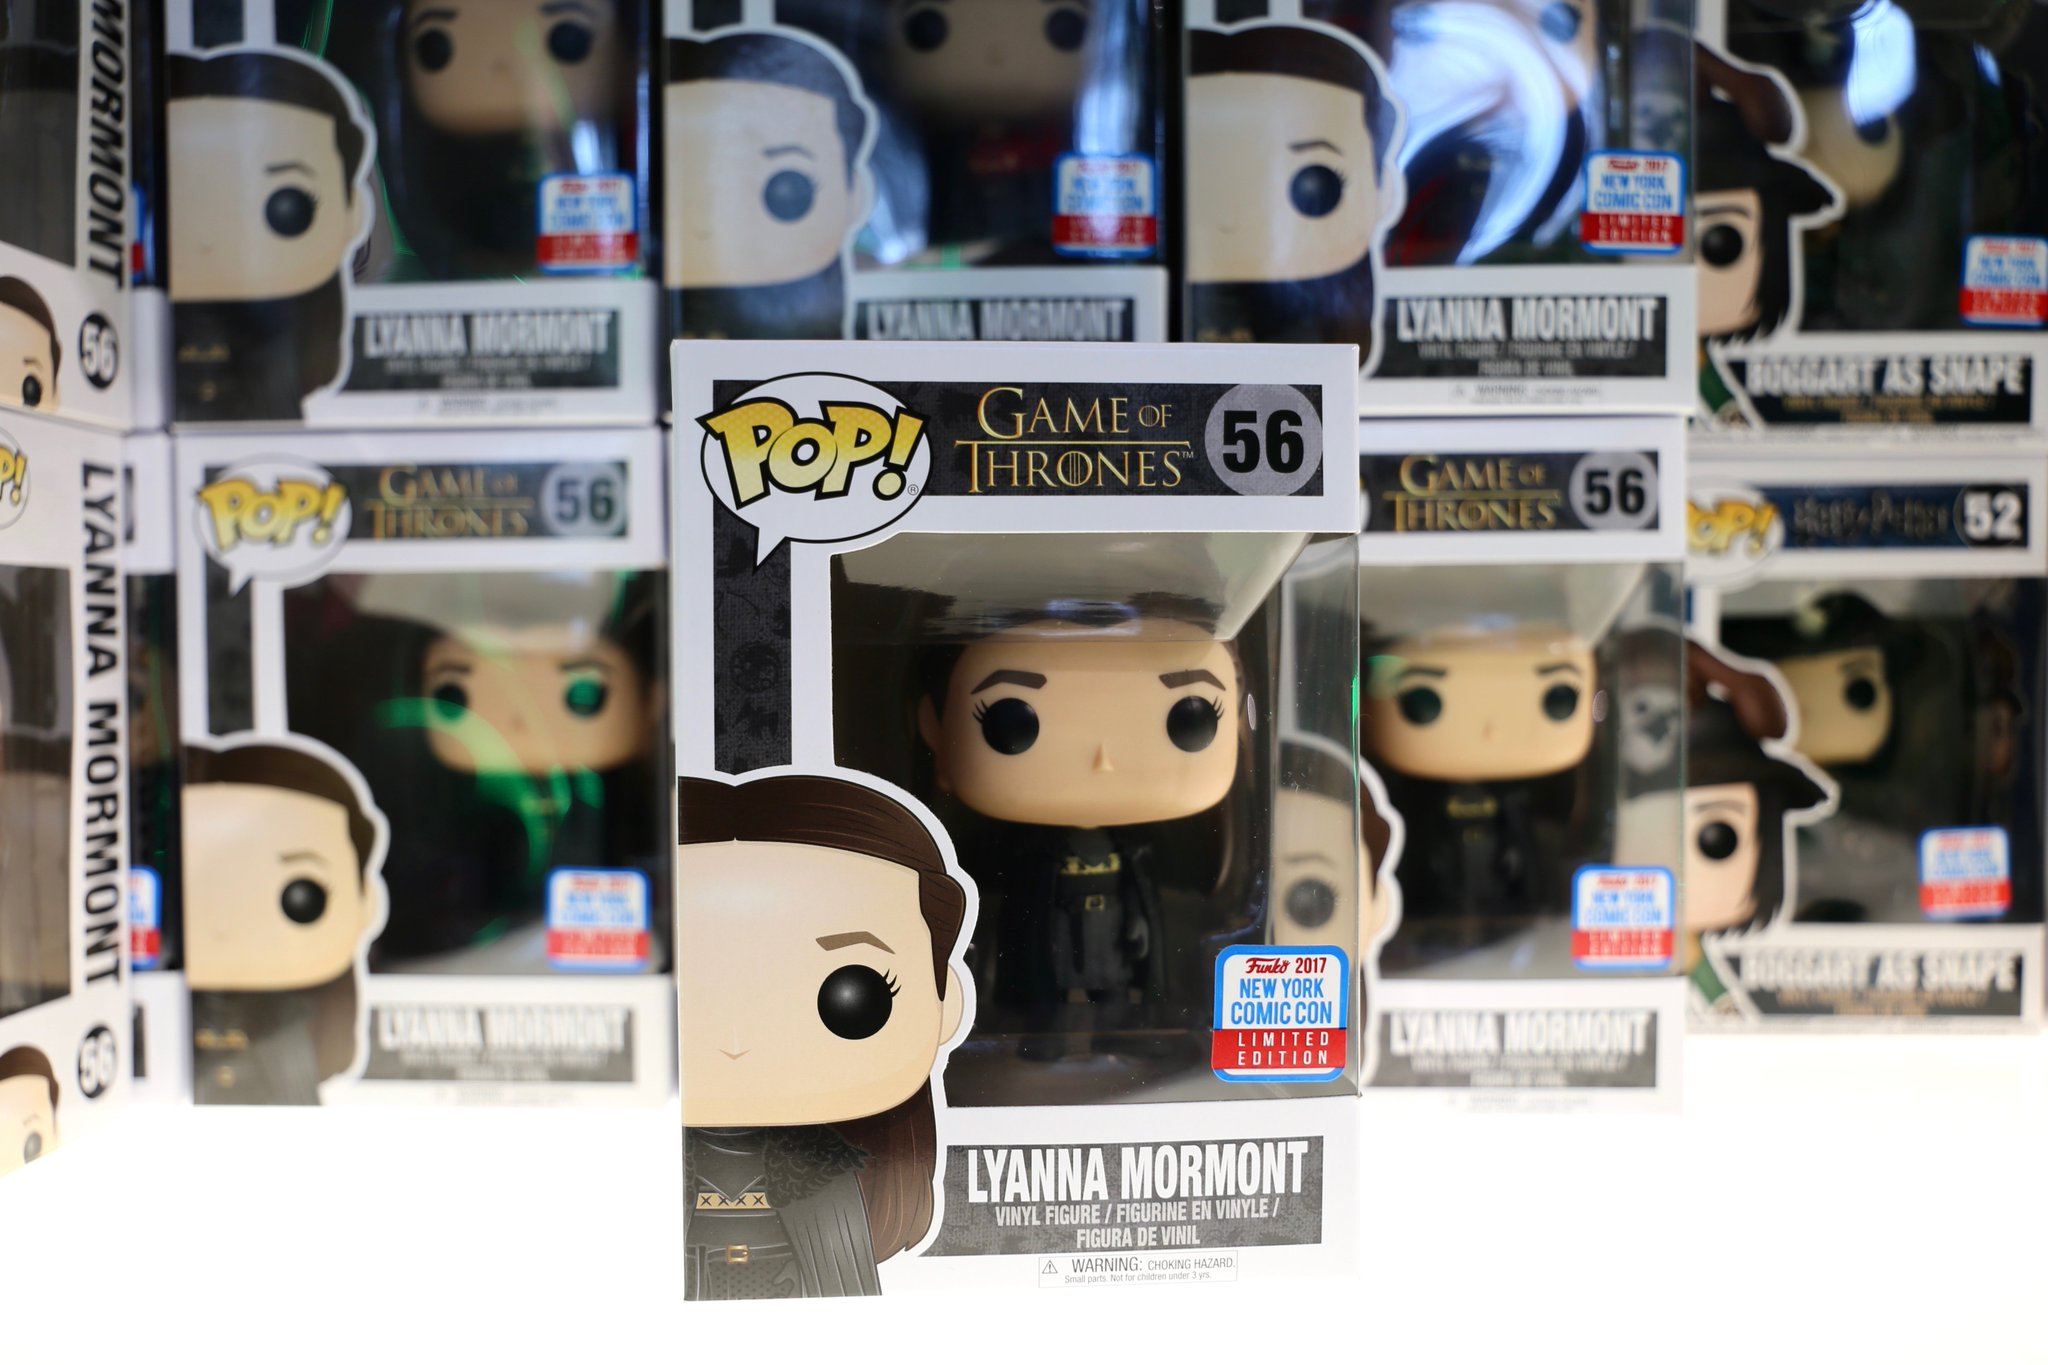 Check out the @OriginalFunko at booth #722 for #GoT exclusives.  #NYCC https://t.co/TGOmyw4gUZ